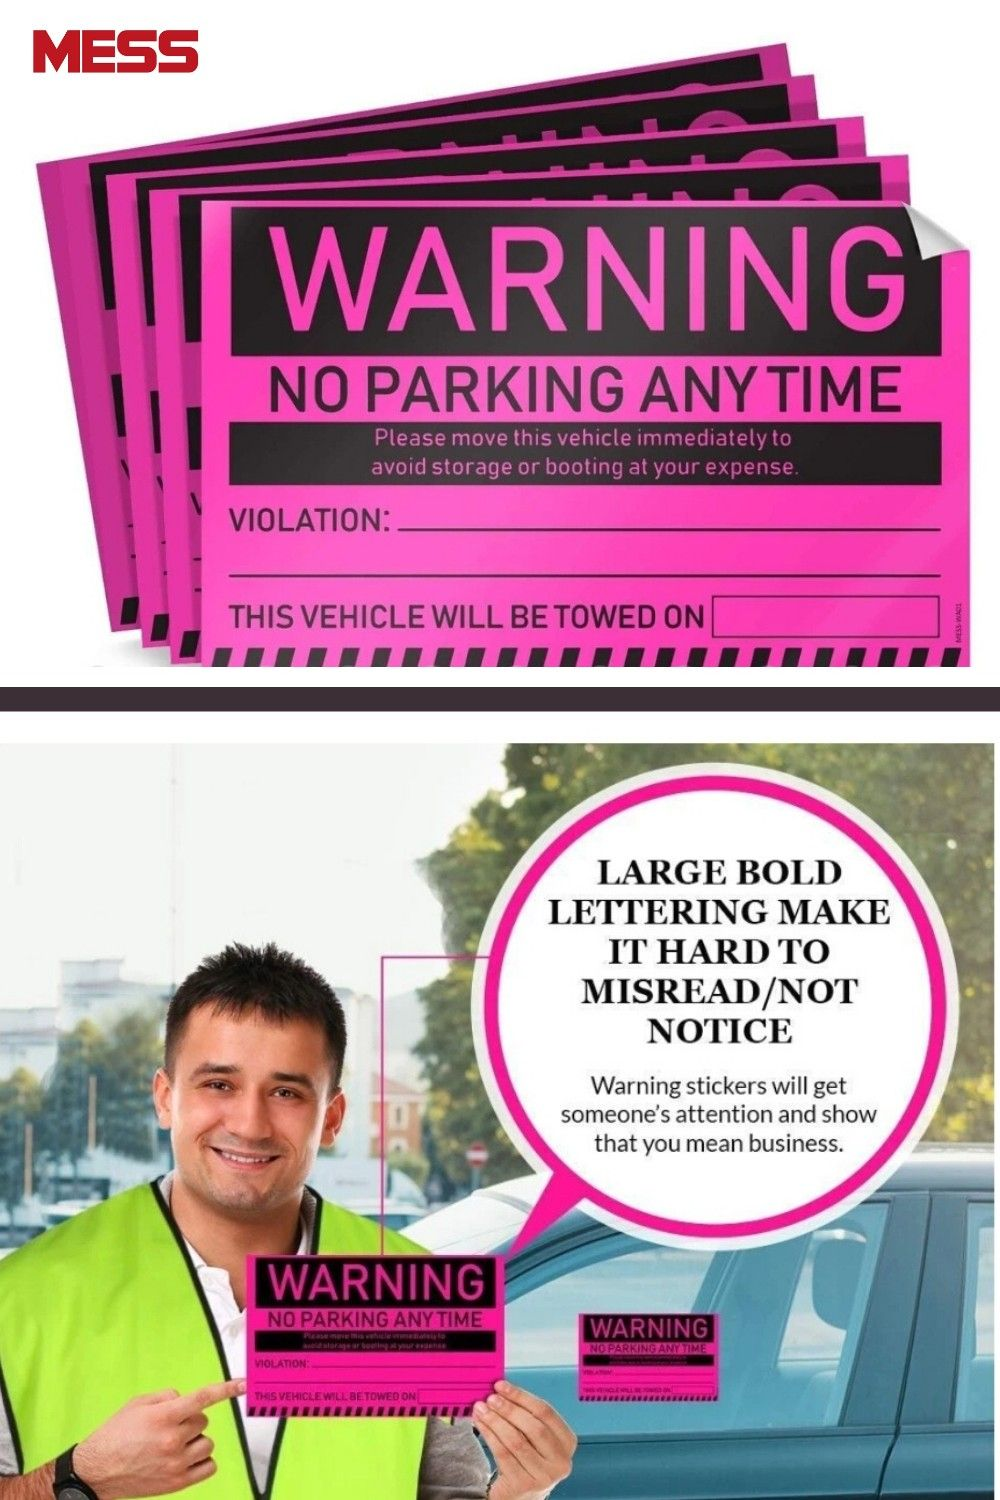 Towing Stickers For Cars Fluorescent Pink Warning No Parking Stickers How To Remove Green Sticker Warning Labels [ jpg ]